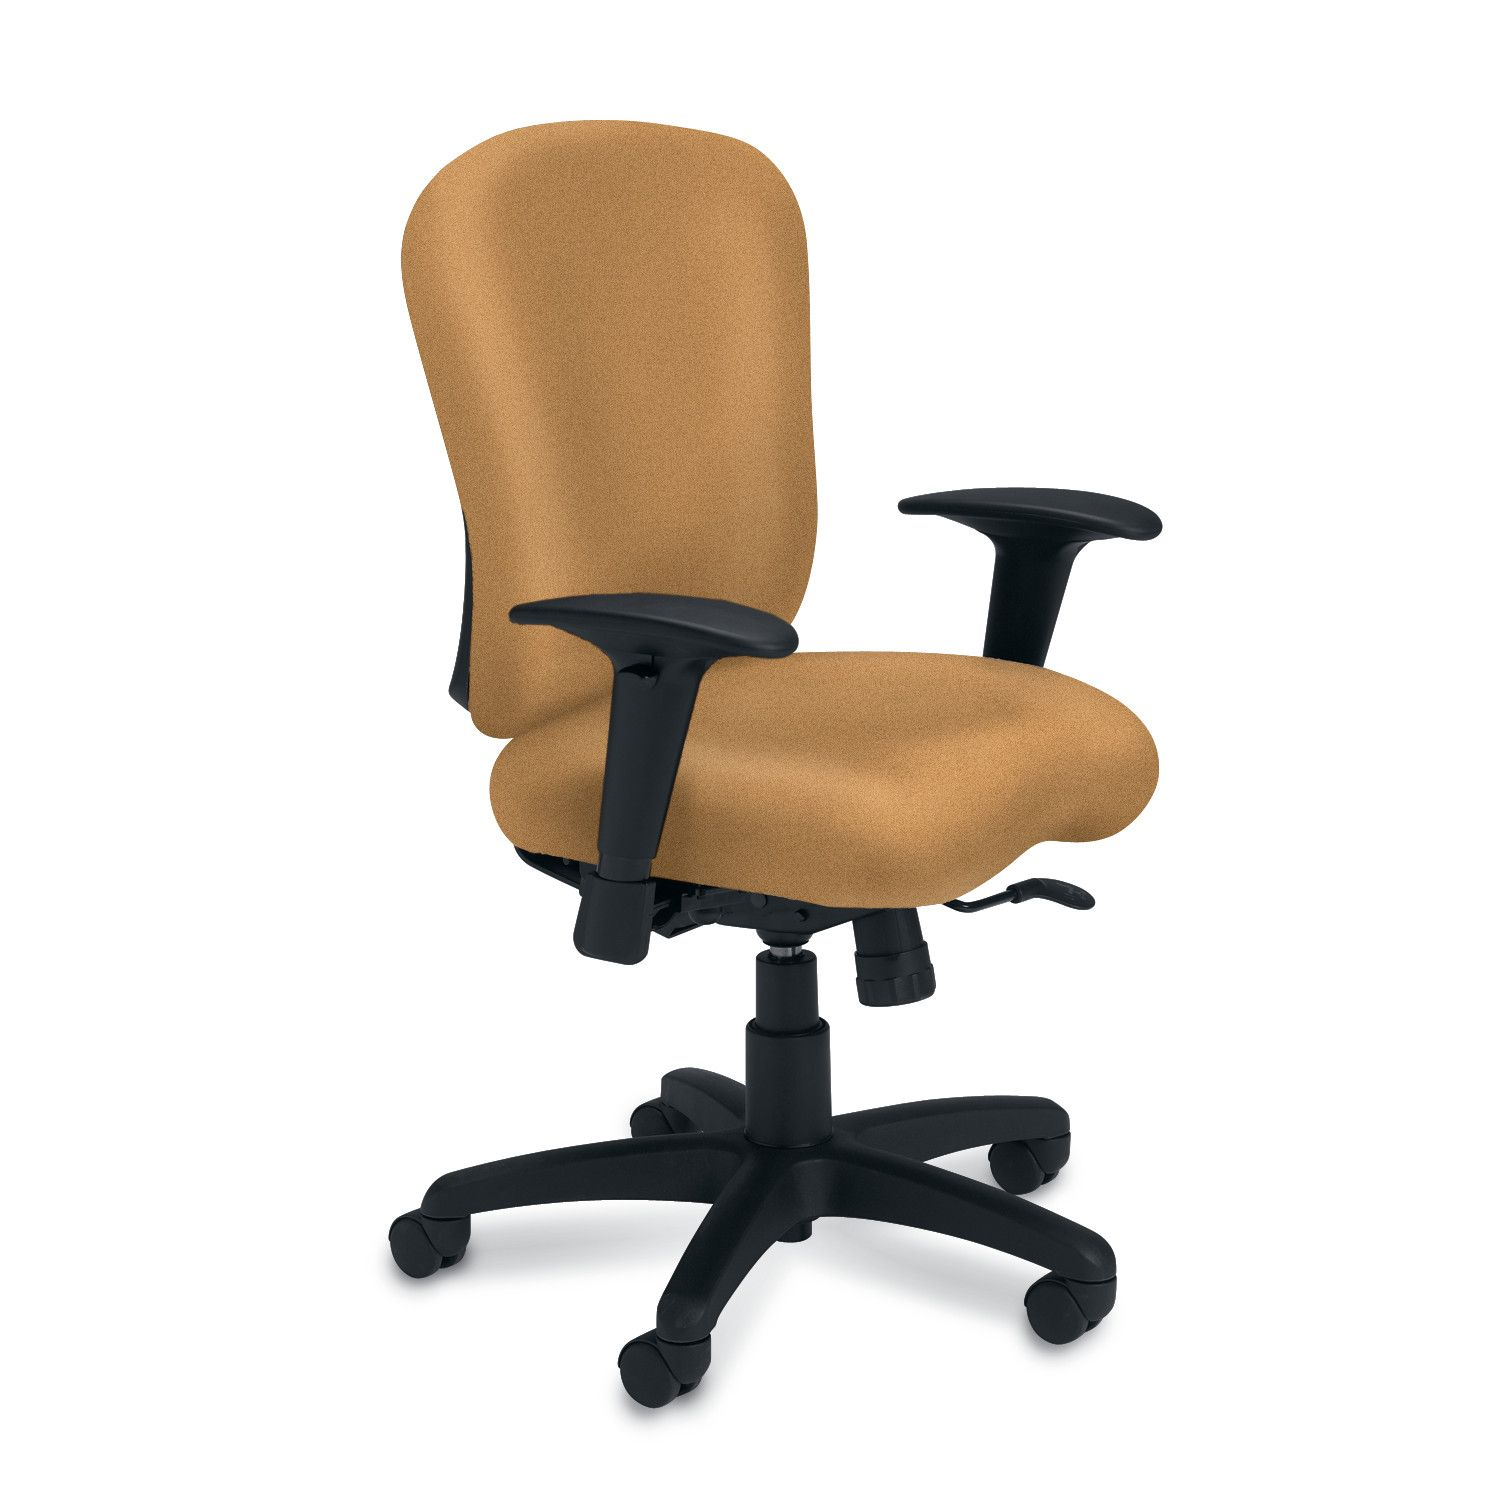 Impress Task Chairs Offer Extraordinary Comfort For Less